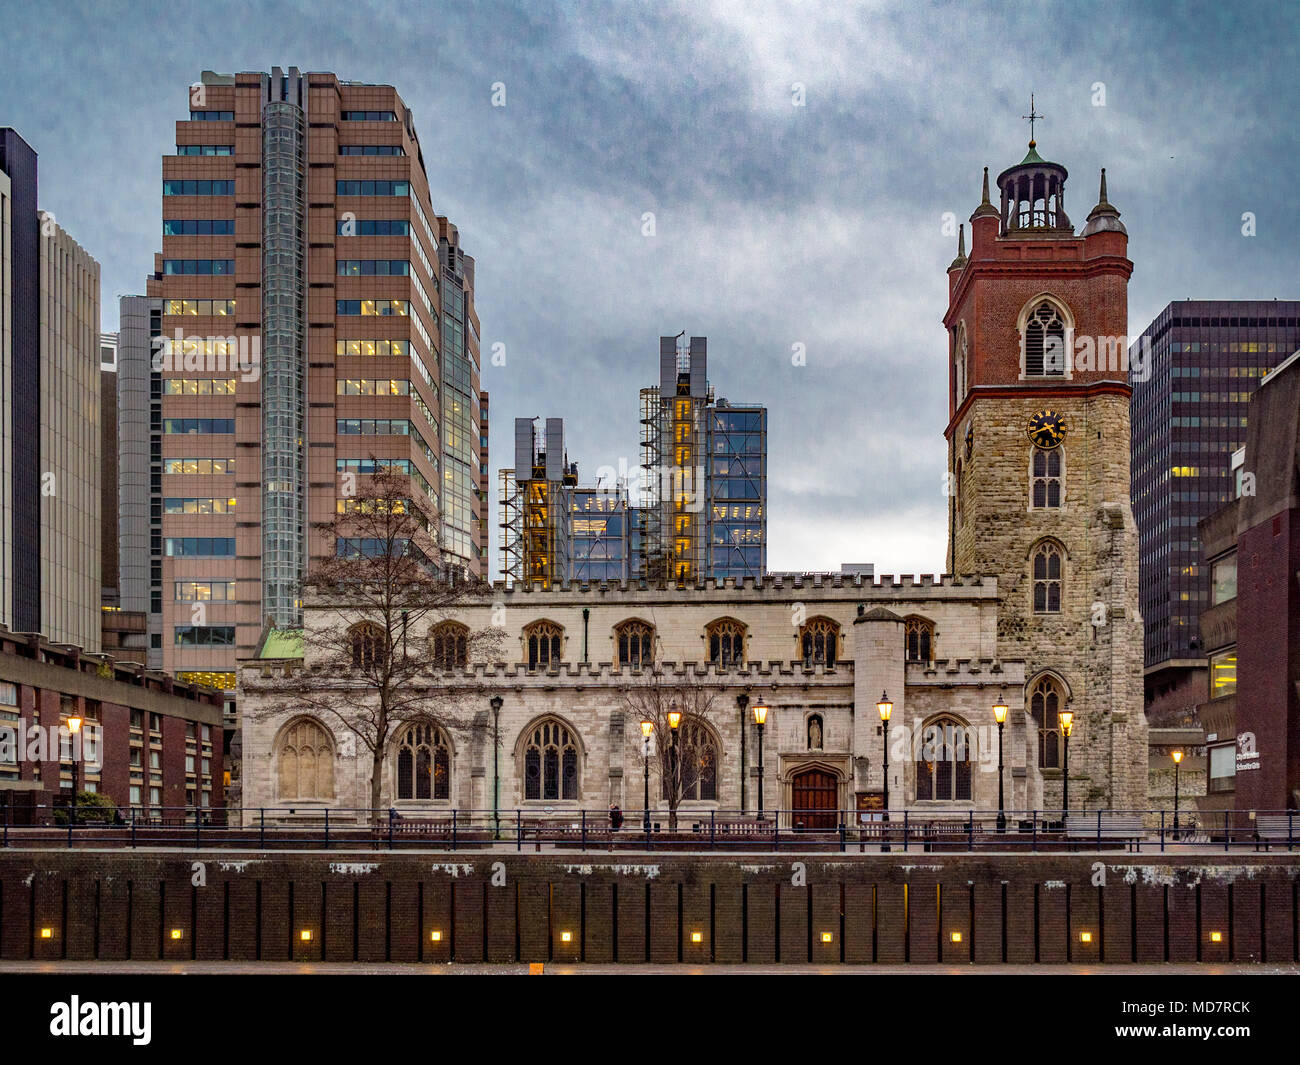 St Giles-without-Cripplegate, Church of England church in the City of London, located on Fore Street within the modern Barbican complex. - Stock Image